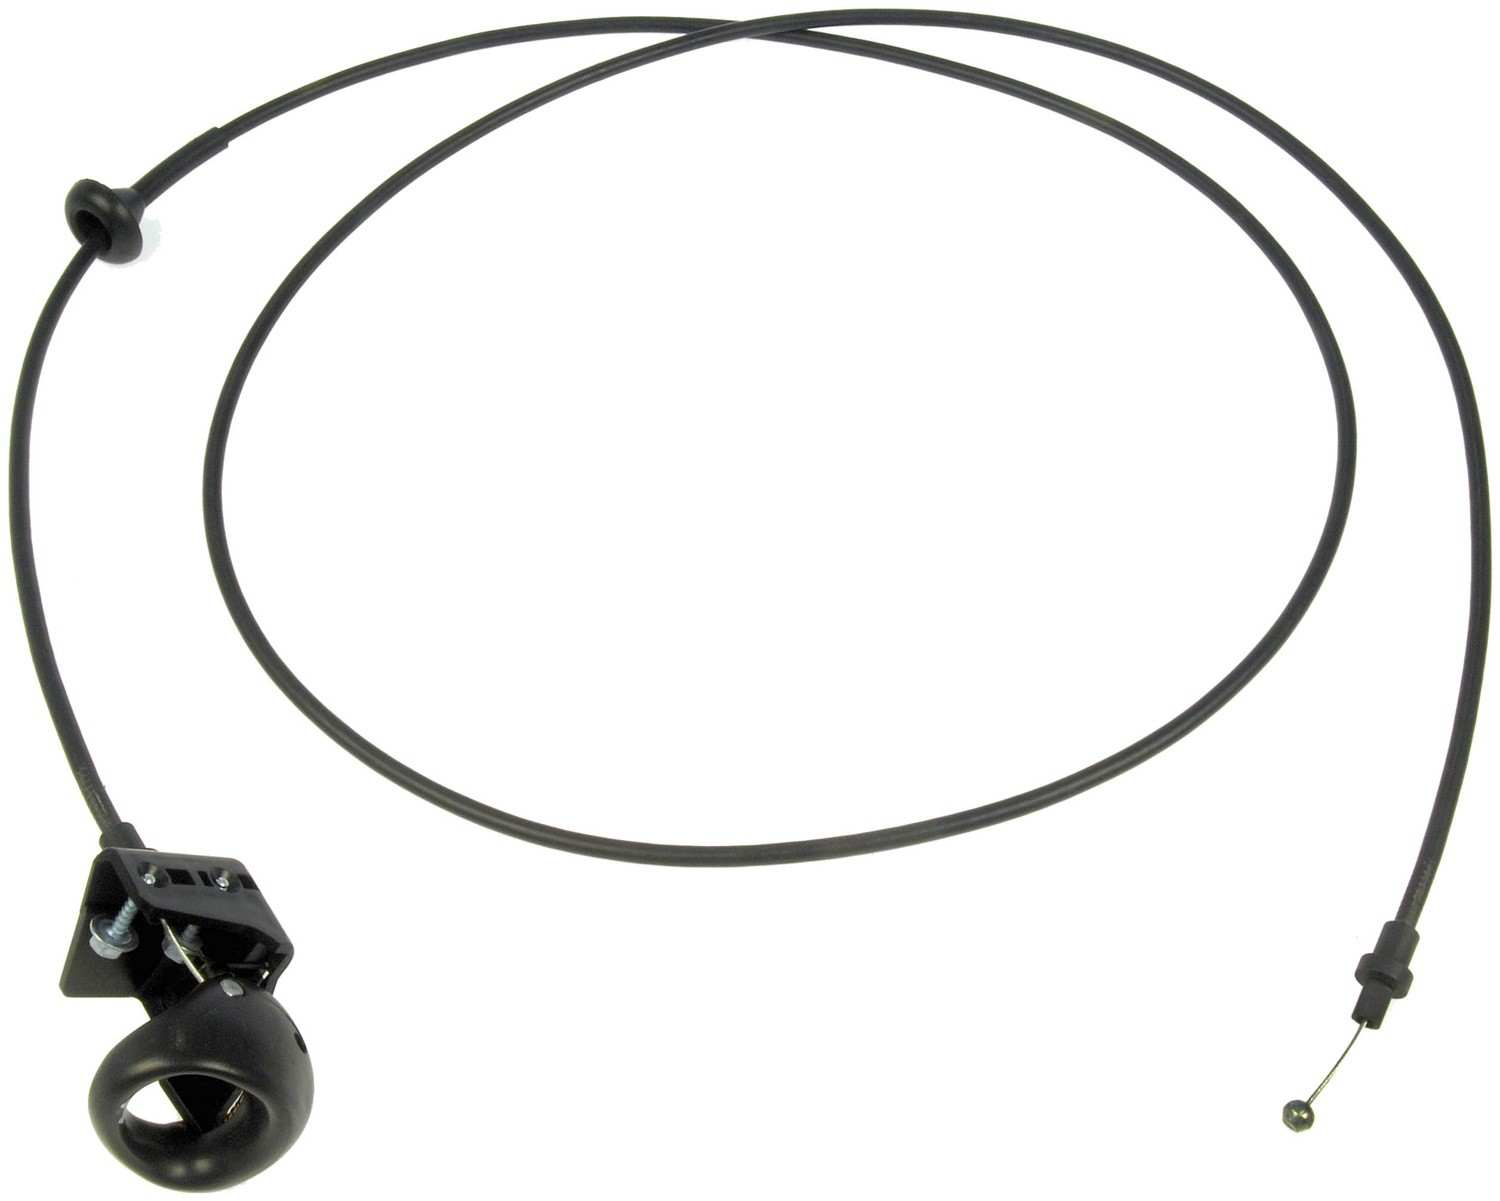 DORMAN OE SOLUTIONS - Hood Release Cable - DRE 912-047